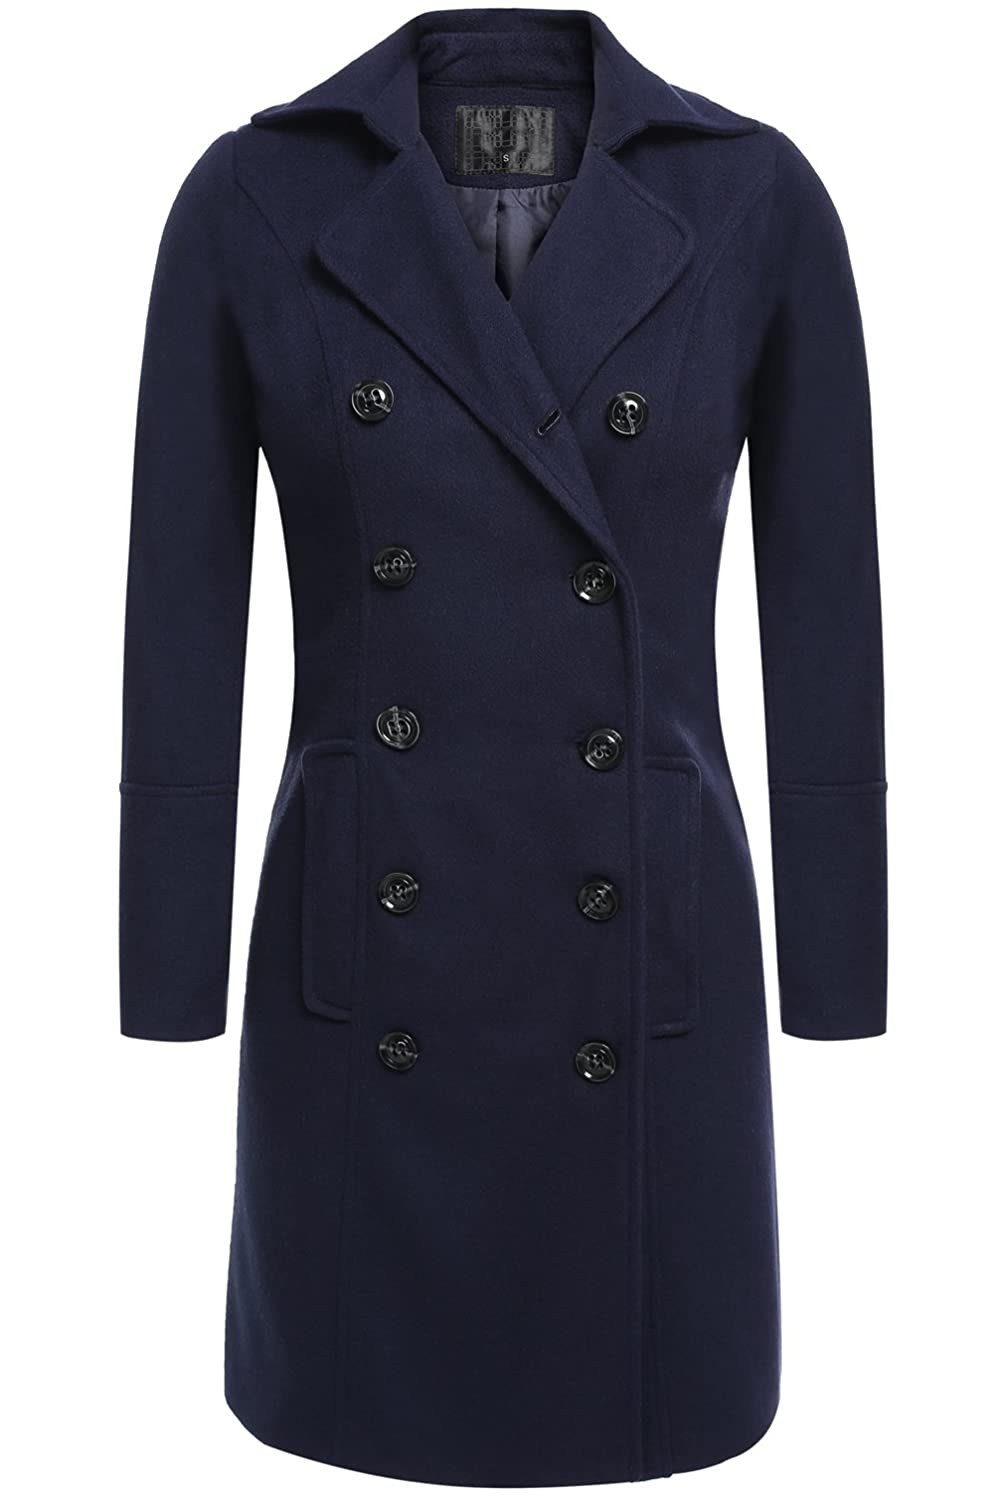 Long Trench Coat, Women's Elegant Double Breasted Slim Fit Winter Overcoat Outerwear